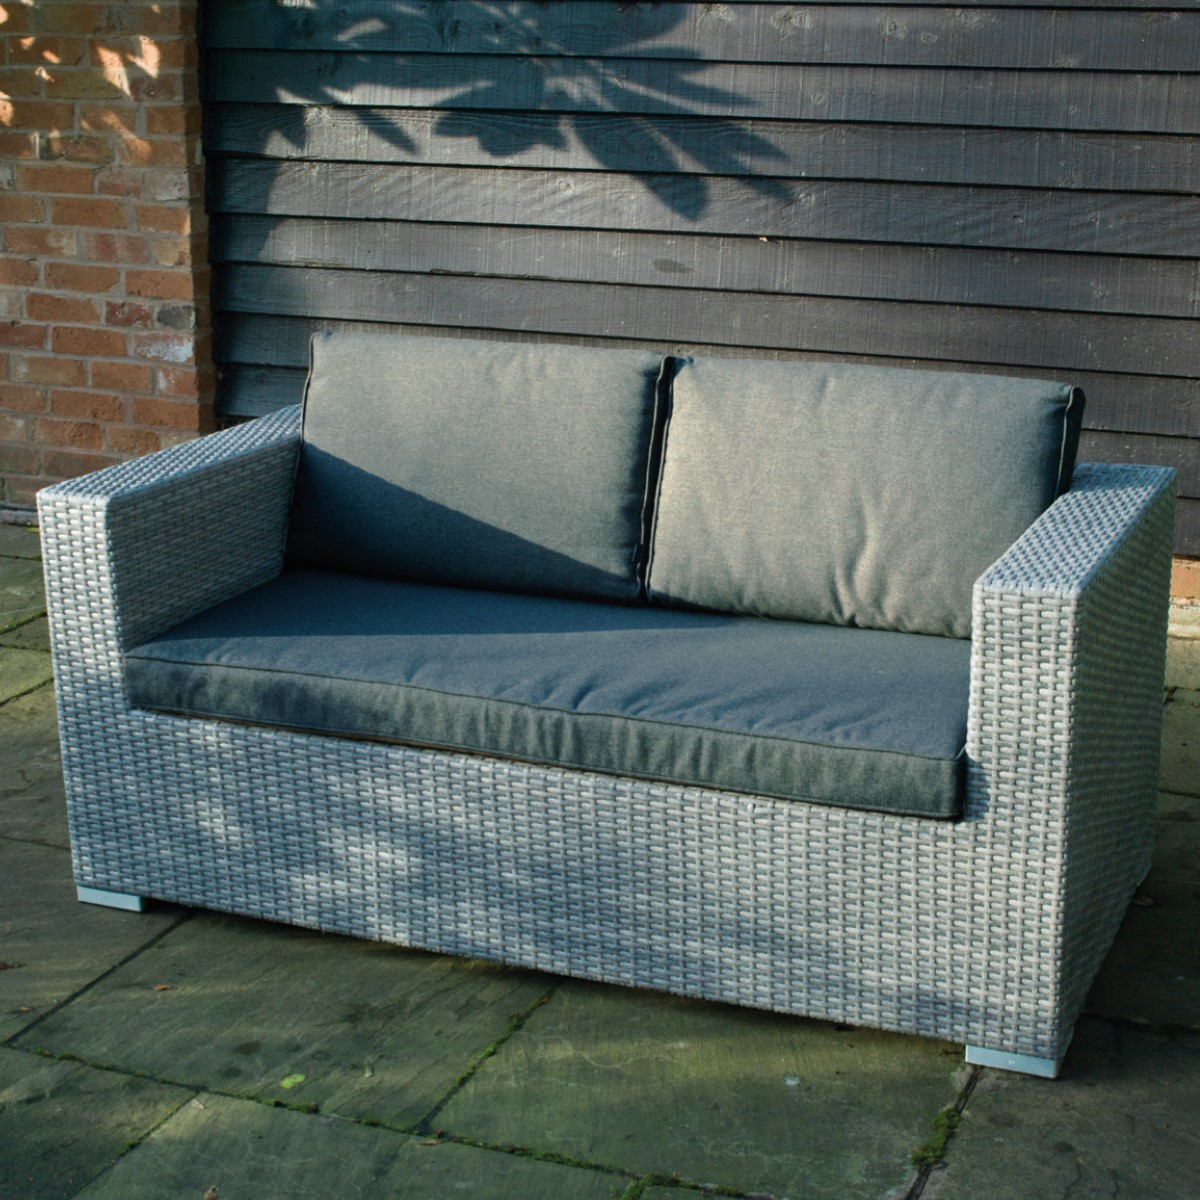 Cologne Rattan 2 Seater Sofa   Woodberry Intended For 2 Seater Sofas (View 14 of 15)